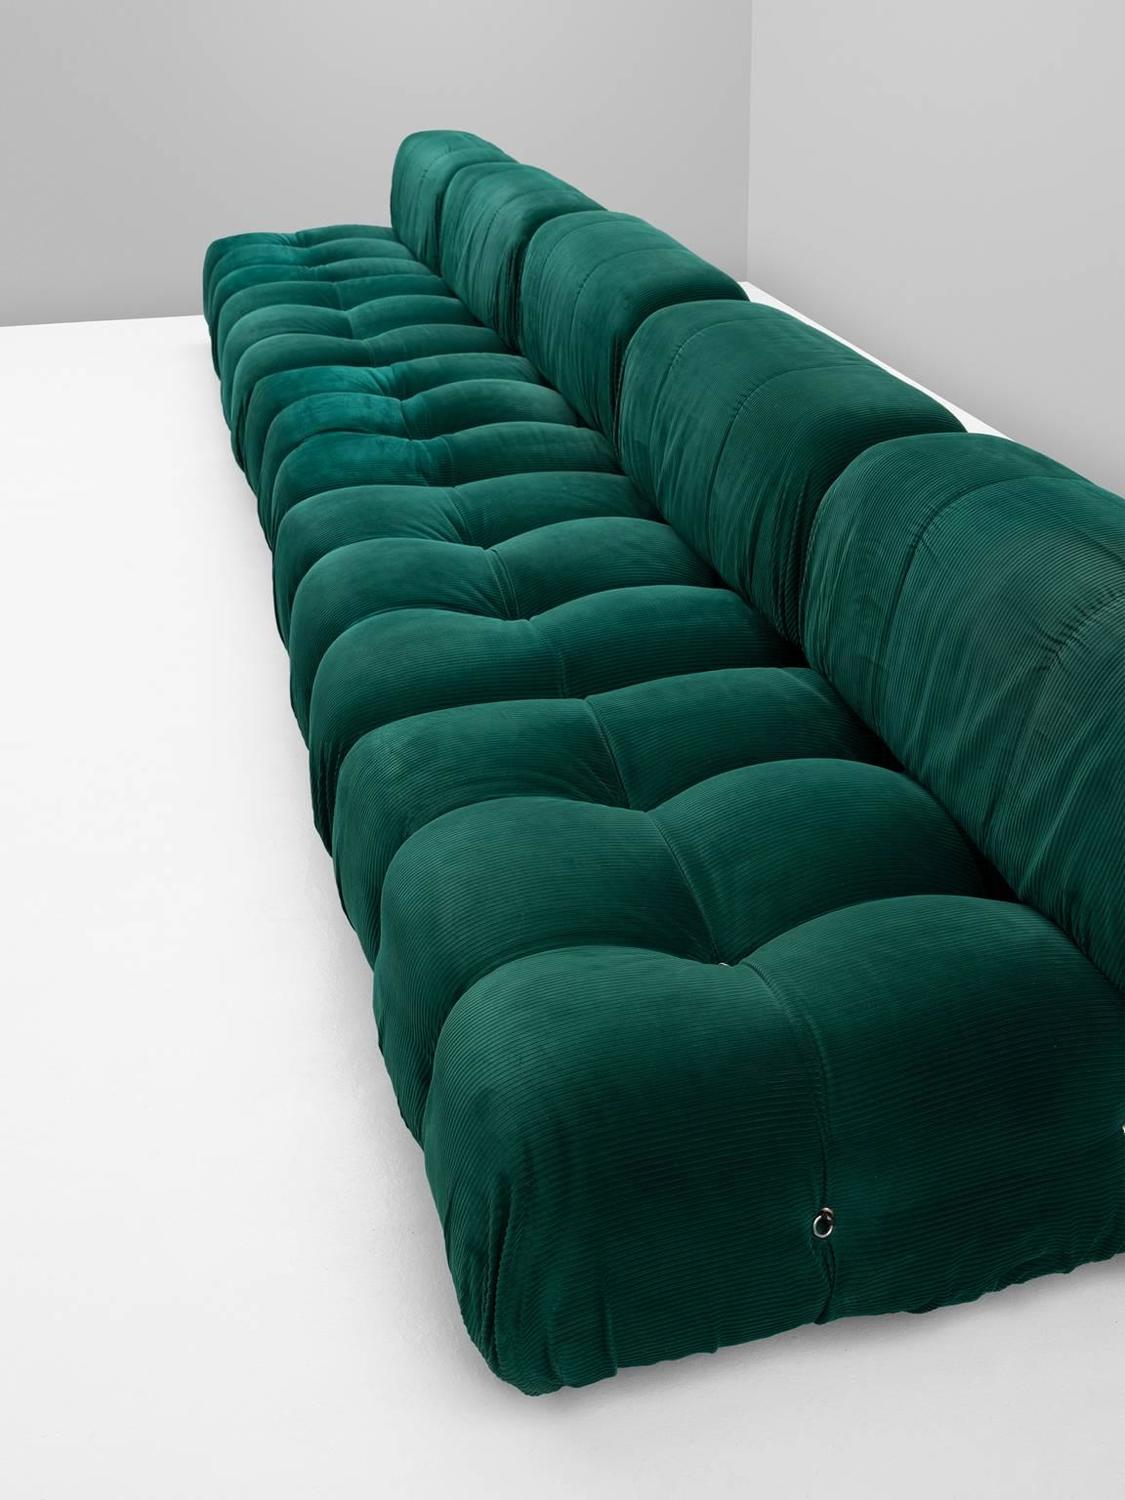 mario bellini camaleonda modular sofa in original green. Black Bedroom Furniture Sets. Home Design Ideas